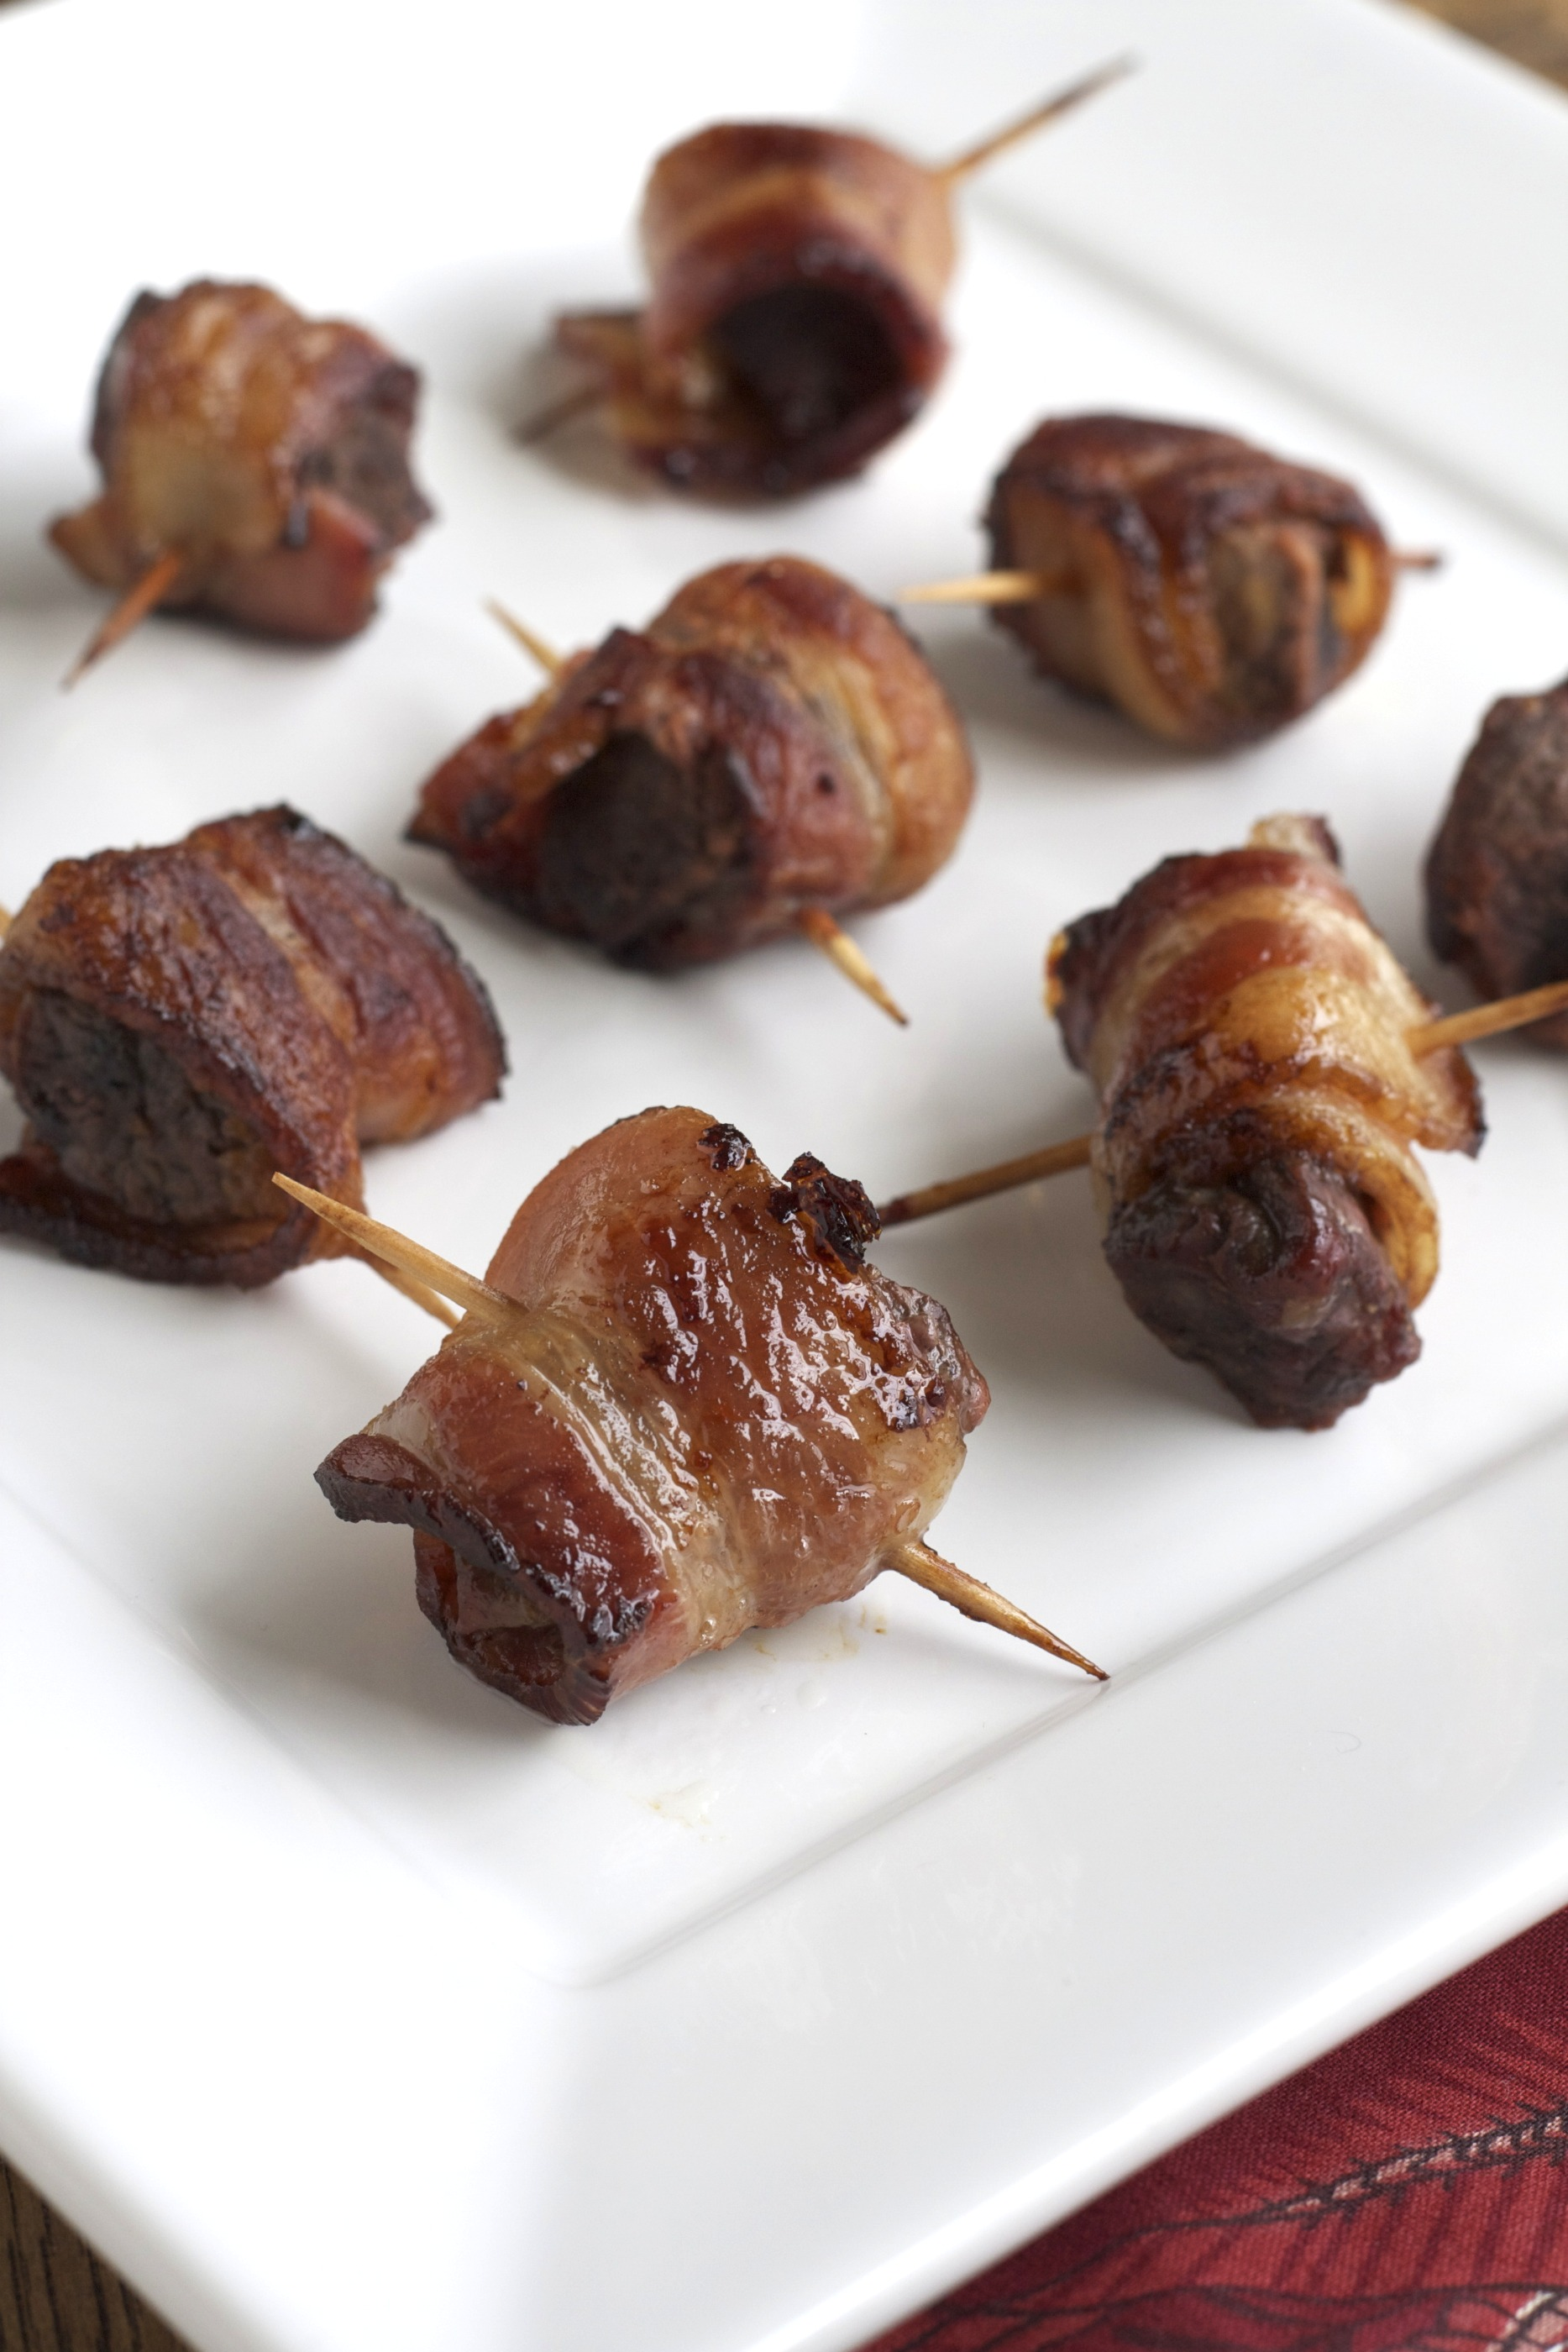 Bacon and Steak Bites